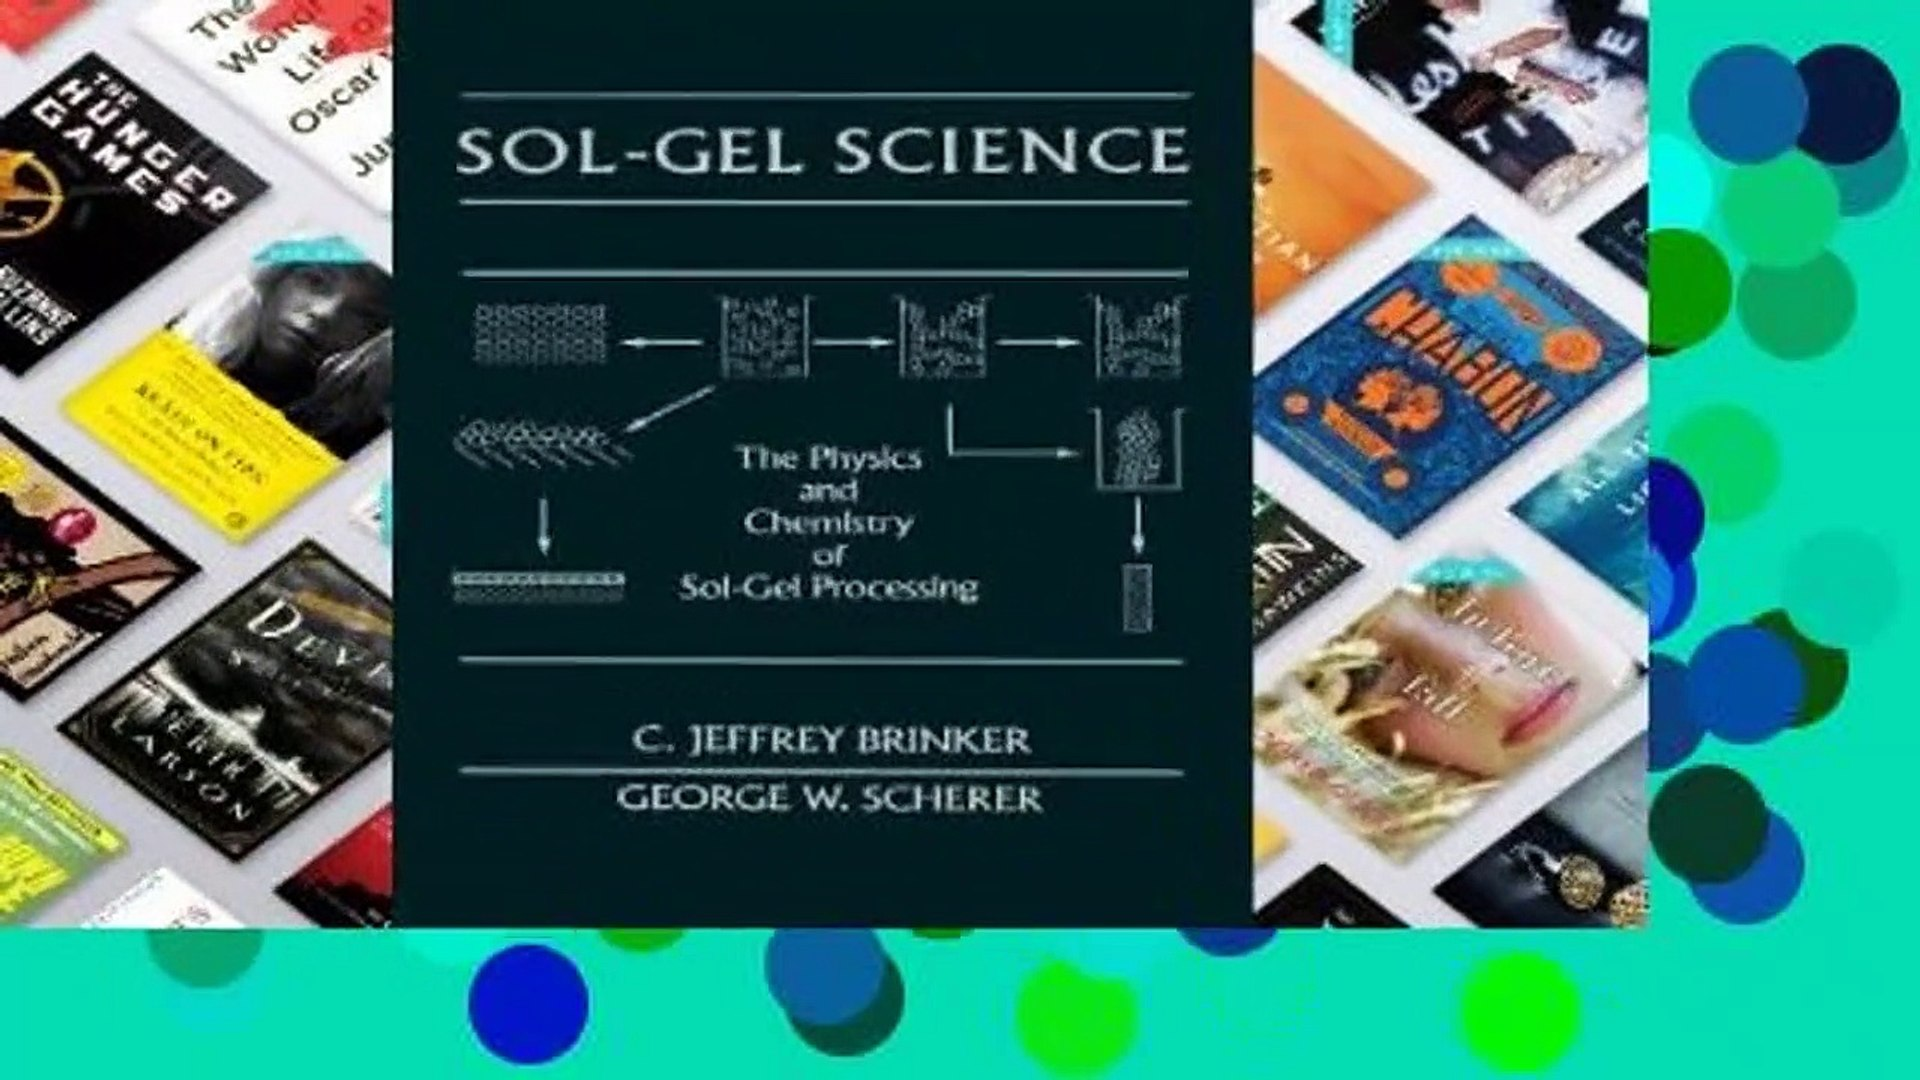 Library  Sol-Gel Science: The Physics and Chemistry of Sol-Gel Processing - C. Jeffrey Brinker